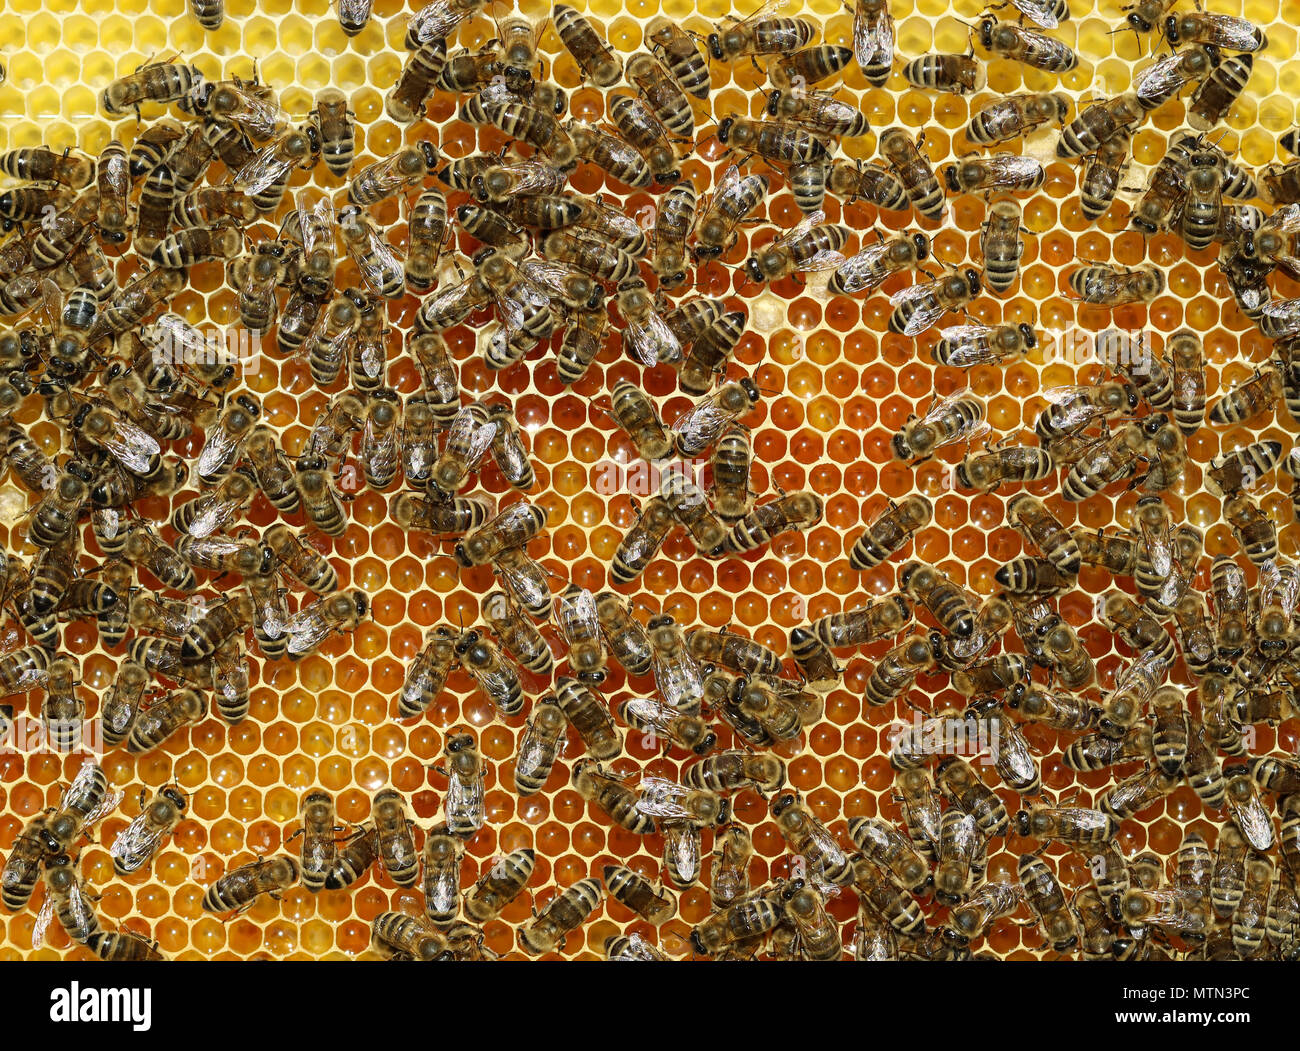 Top view of working bees on a honeycomb - Stock Image